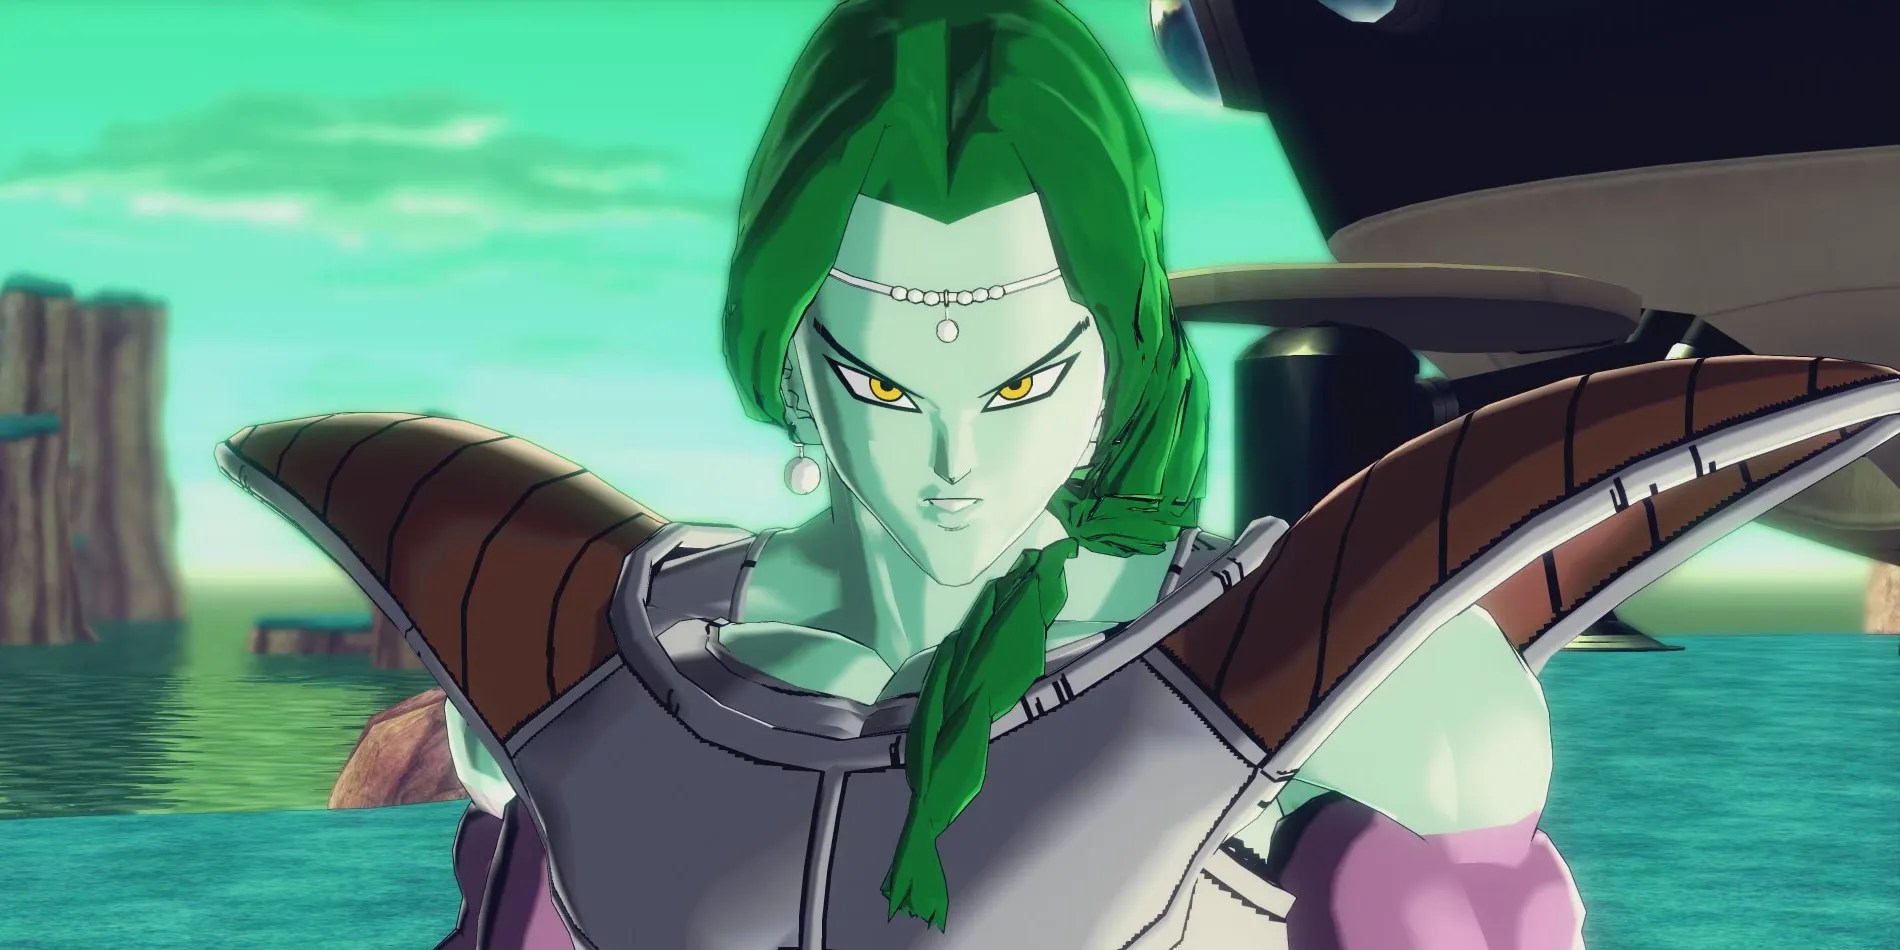 Dragon Ball Z 15 Crazy Ways The Video Games Changed The Story